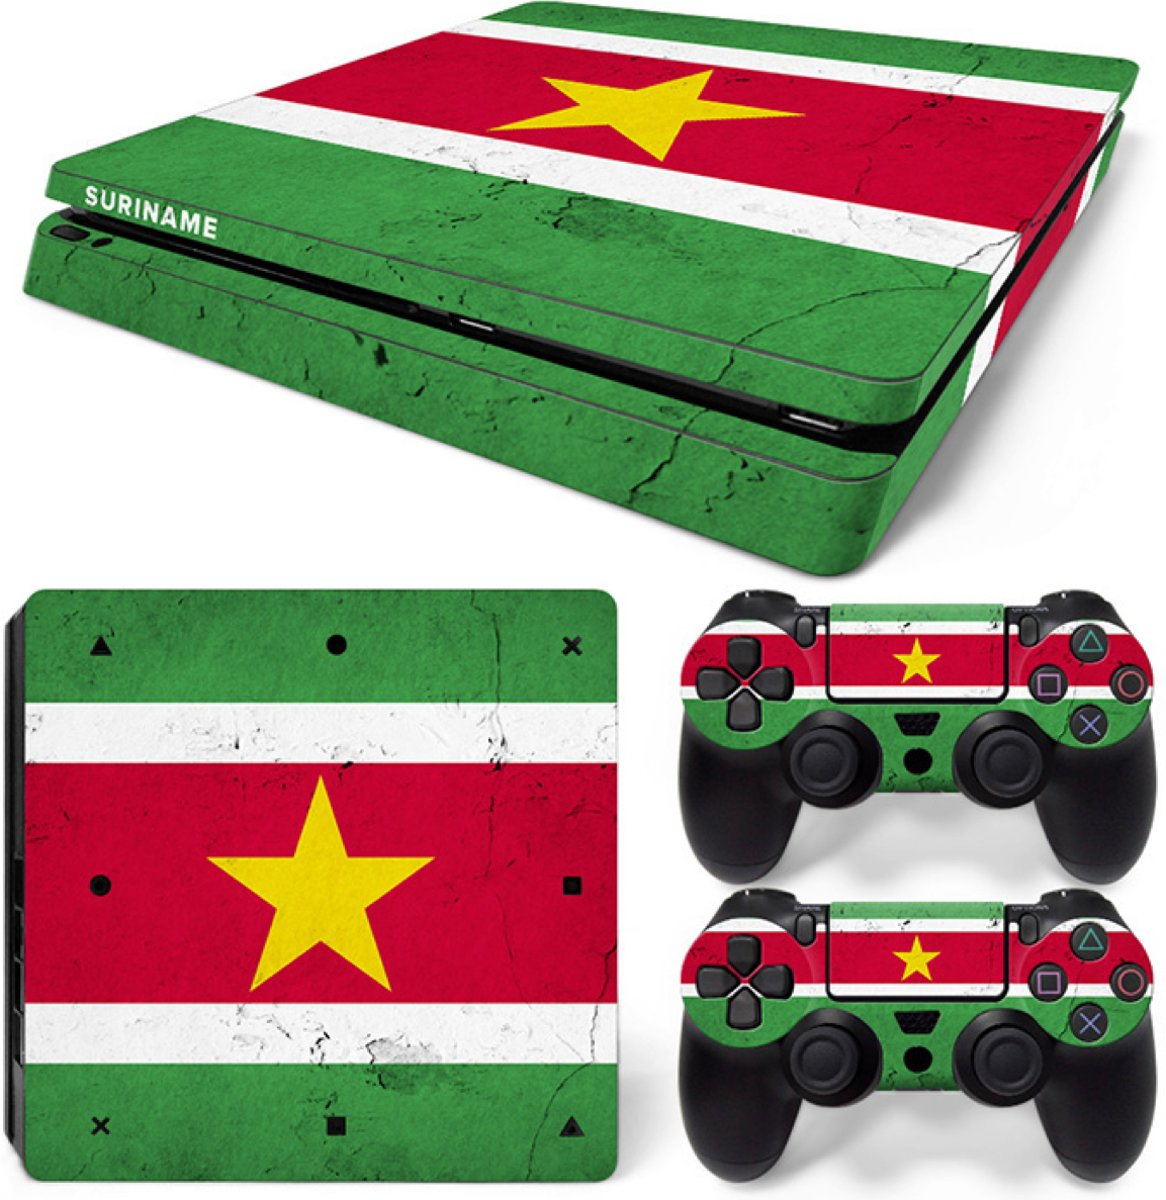 Suriname - PS4 Slim Console Skins PlayStation Stickers